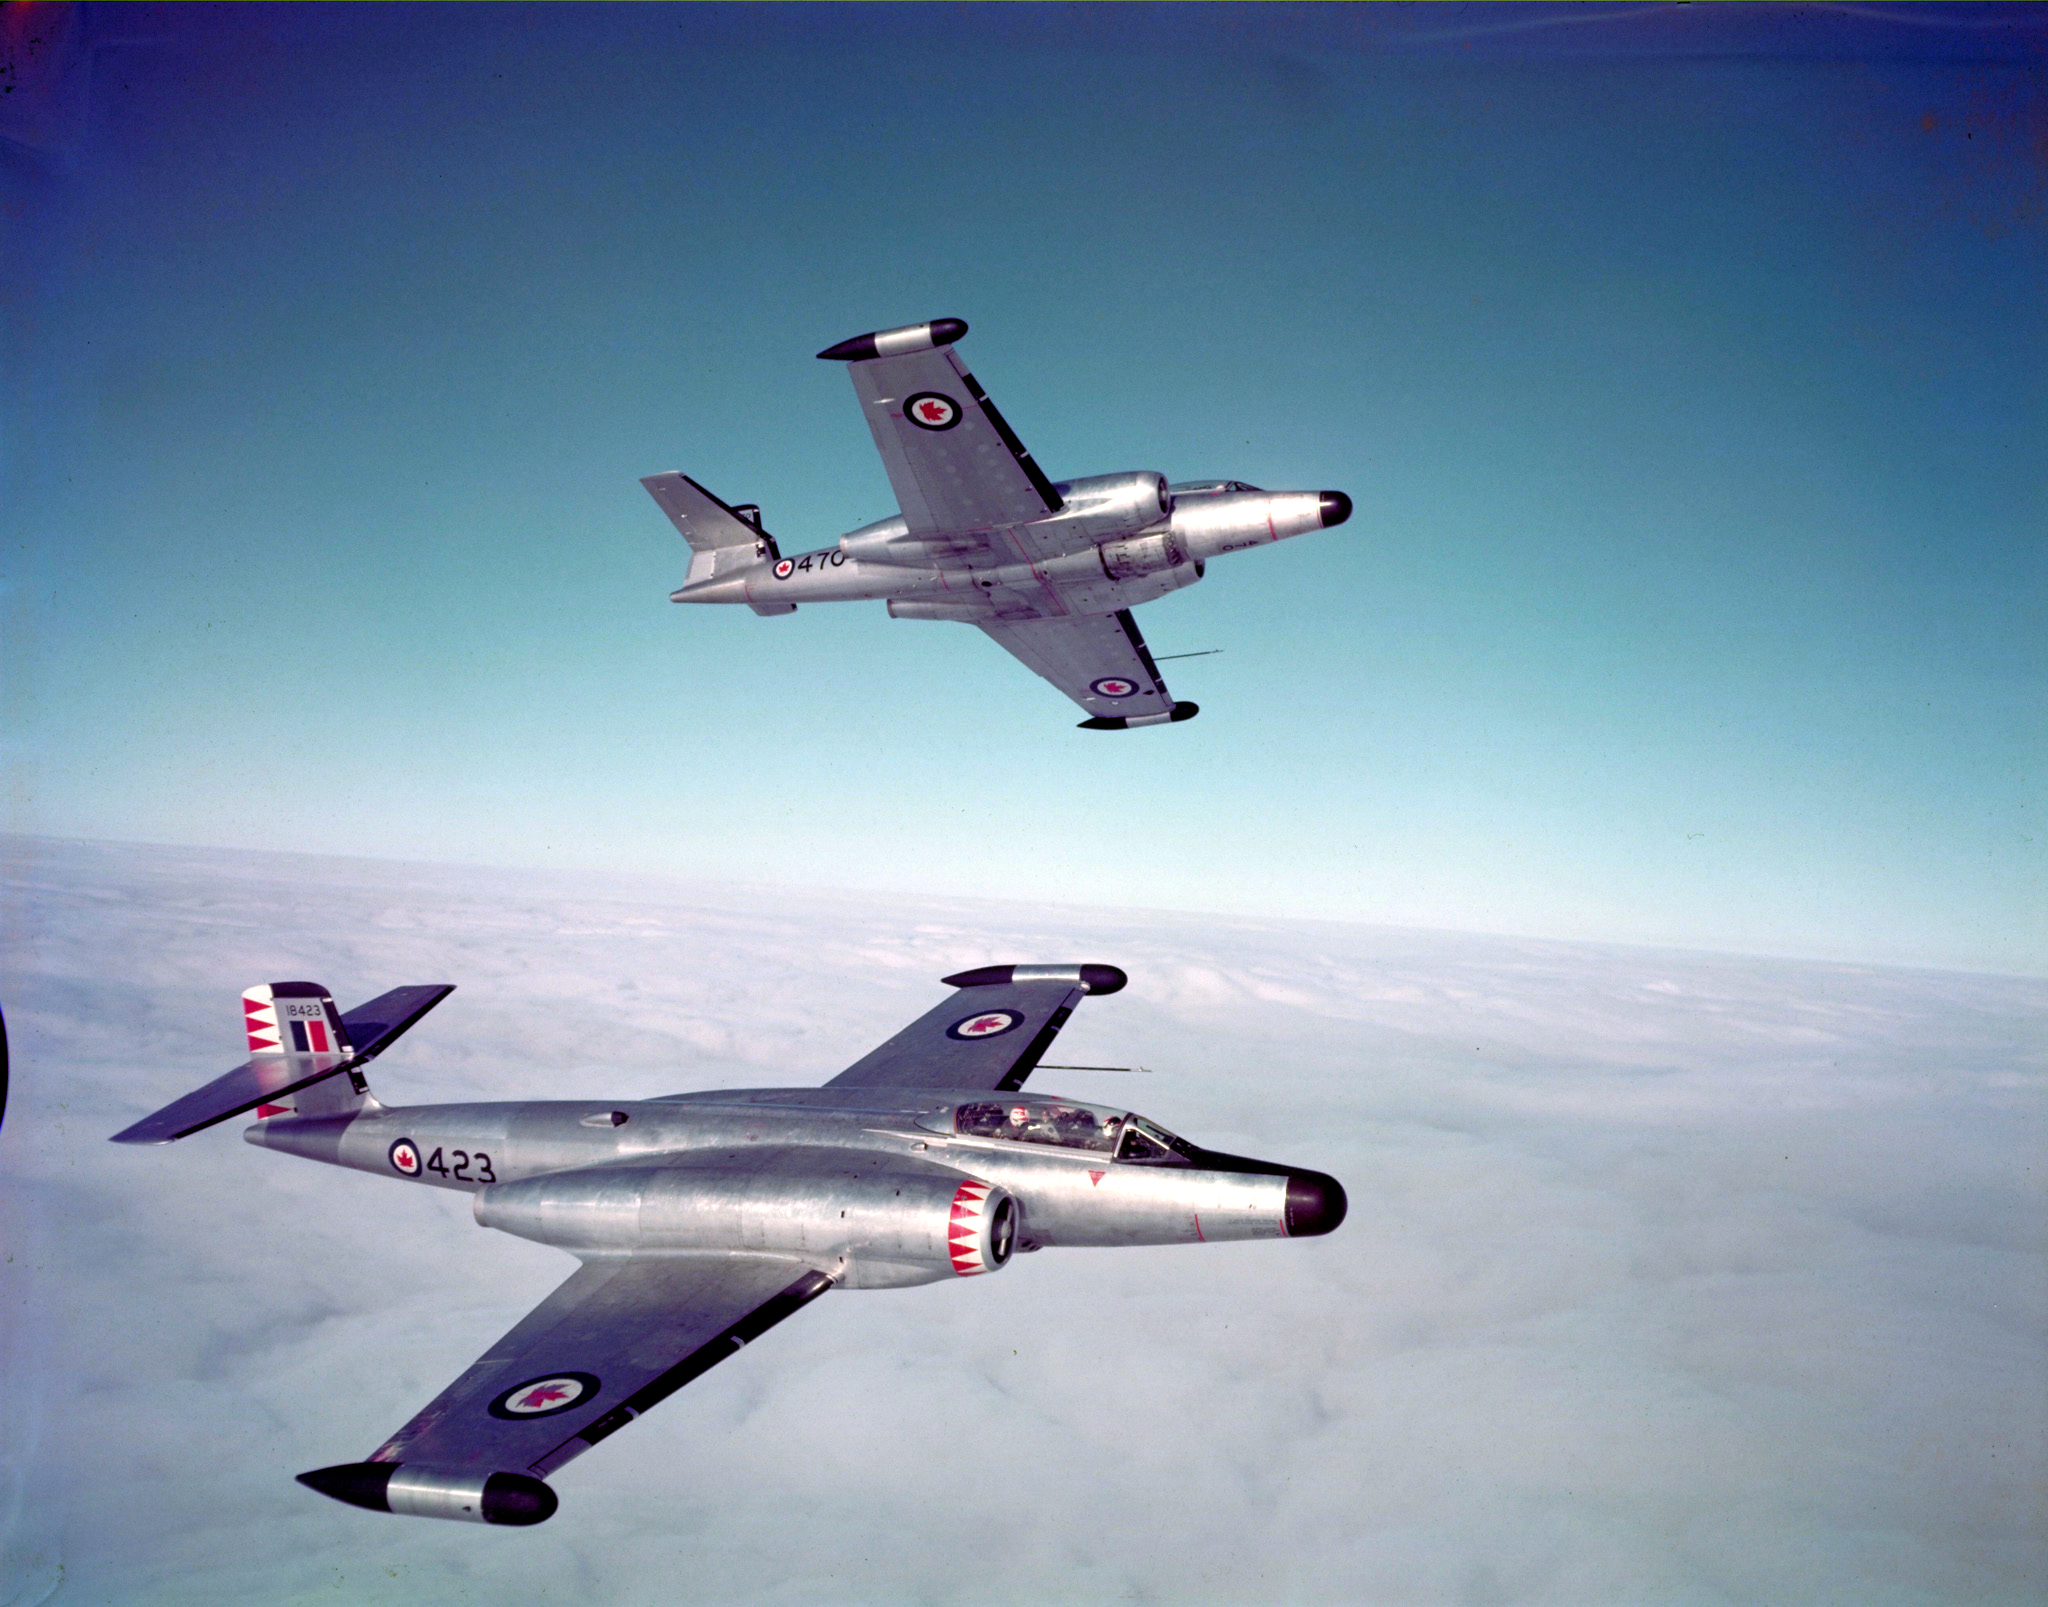 Deux CF-100 Canuck Mk IV en vol. PHOTO : Archives du MDN, PC-1089